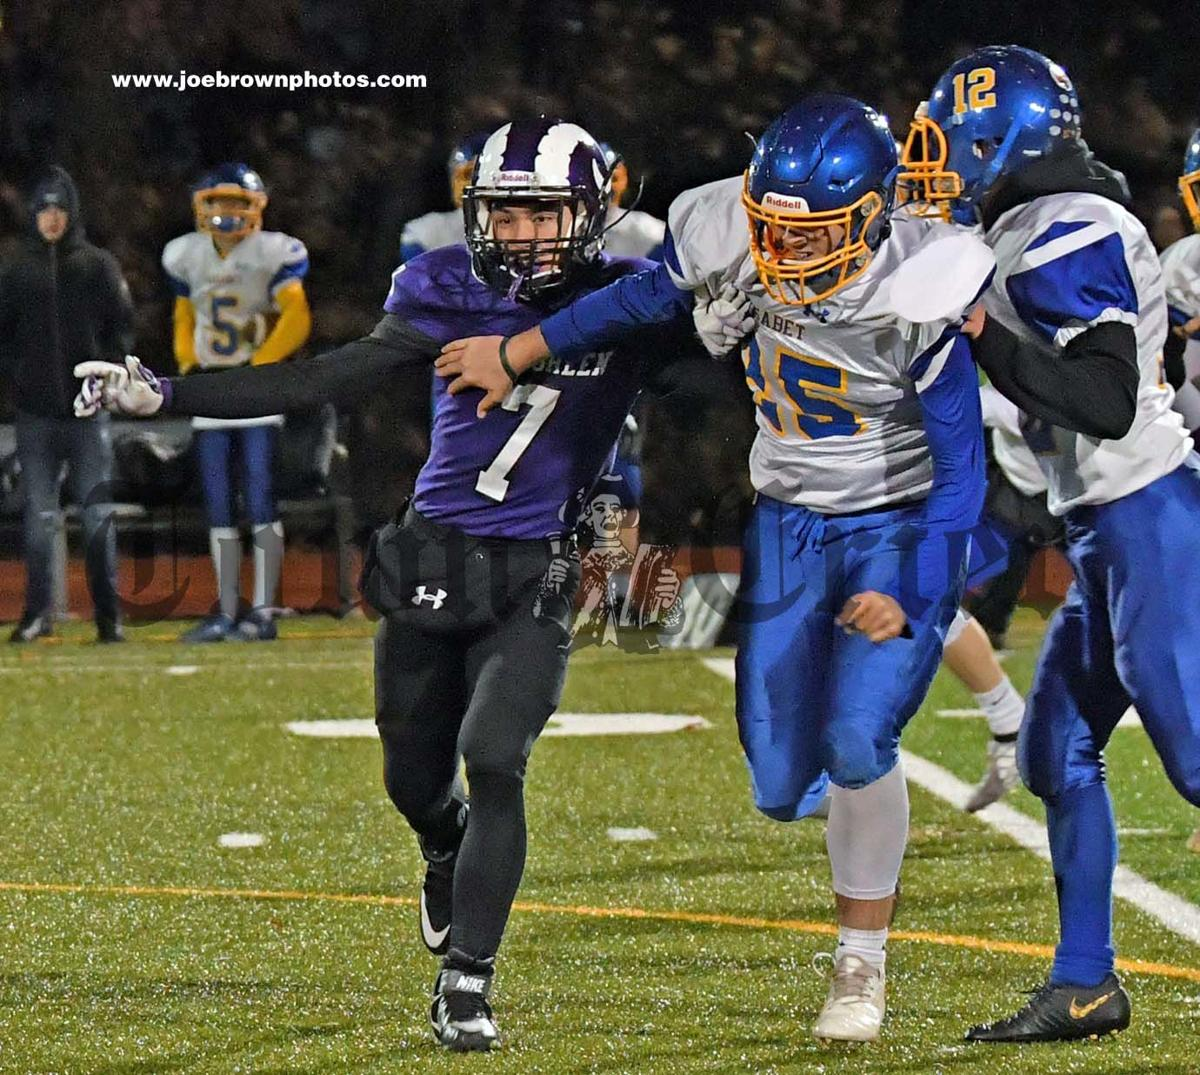 Tewksbury's Anthony D'Ampolo holds back Assabet players